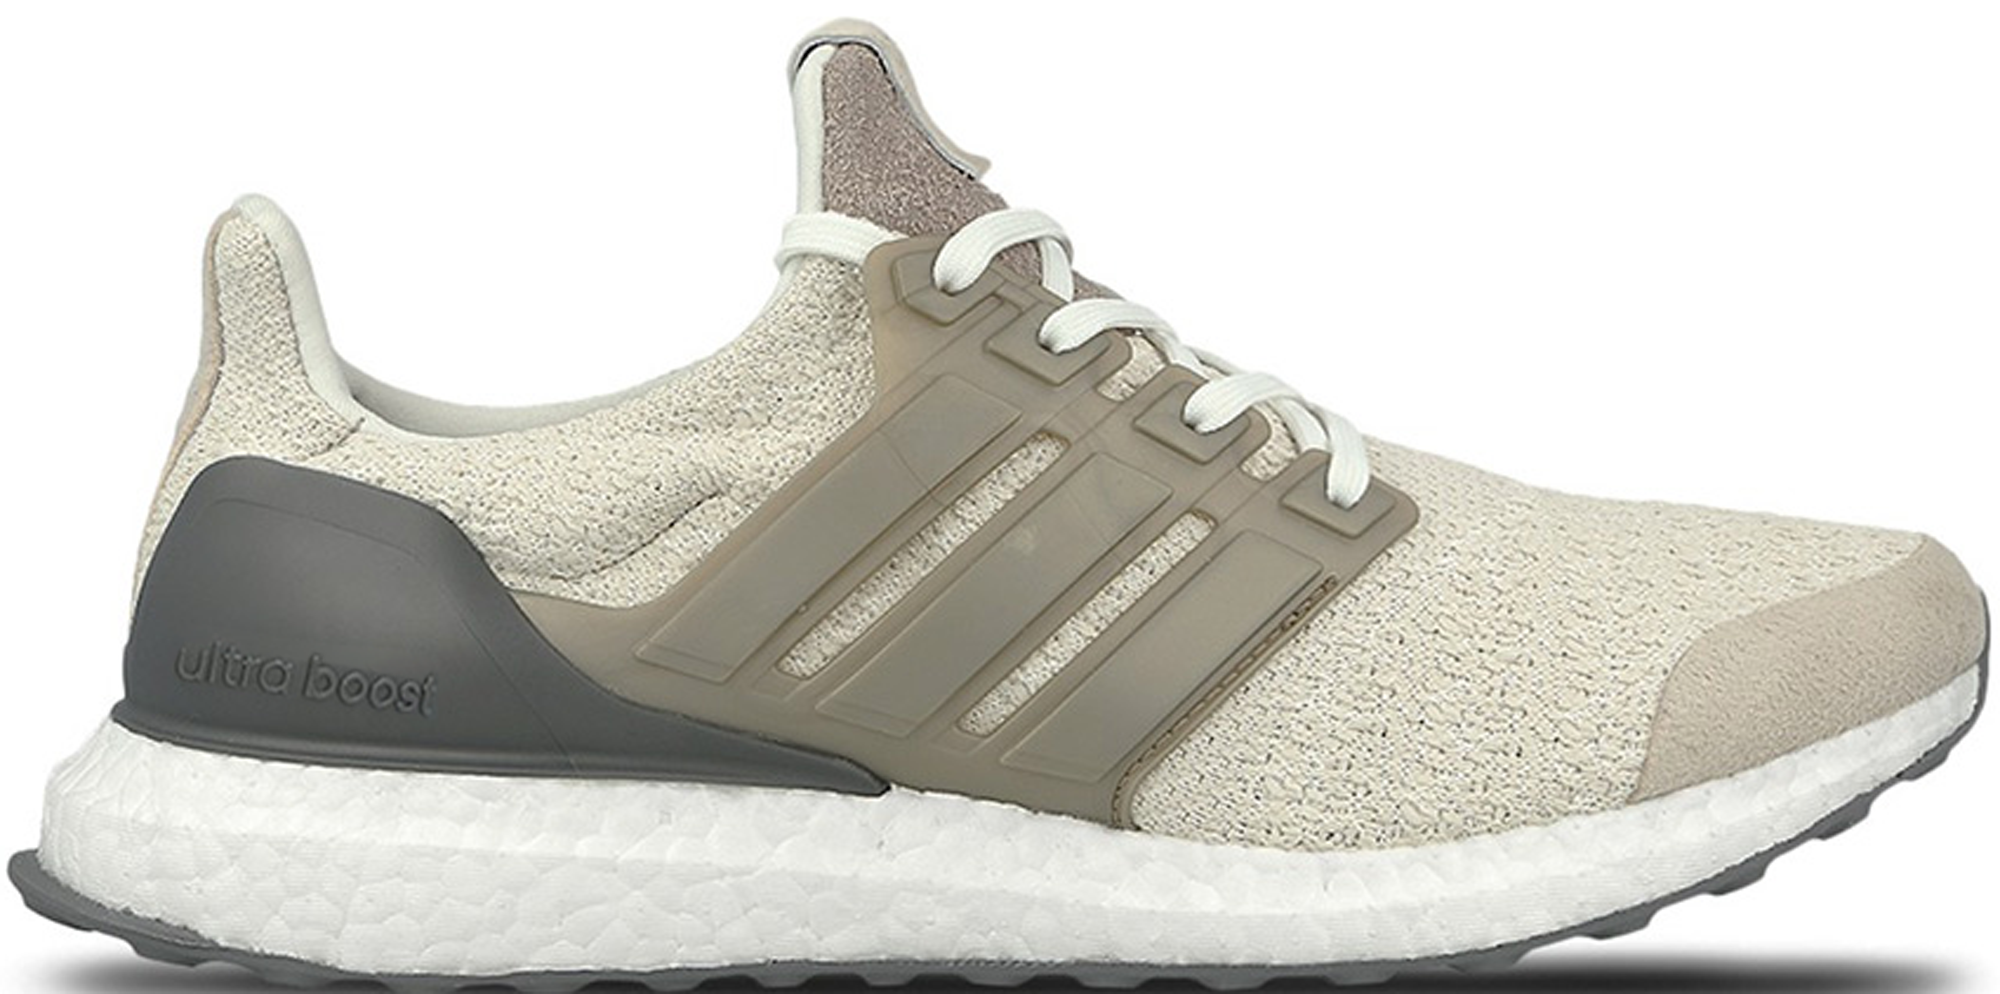 e1b4032c I just listed an Ask for the adidas Ultra Boost Lux Sneakersnstuff x Social  Status Vintage White on StockX